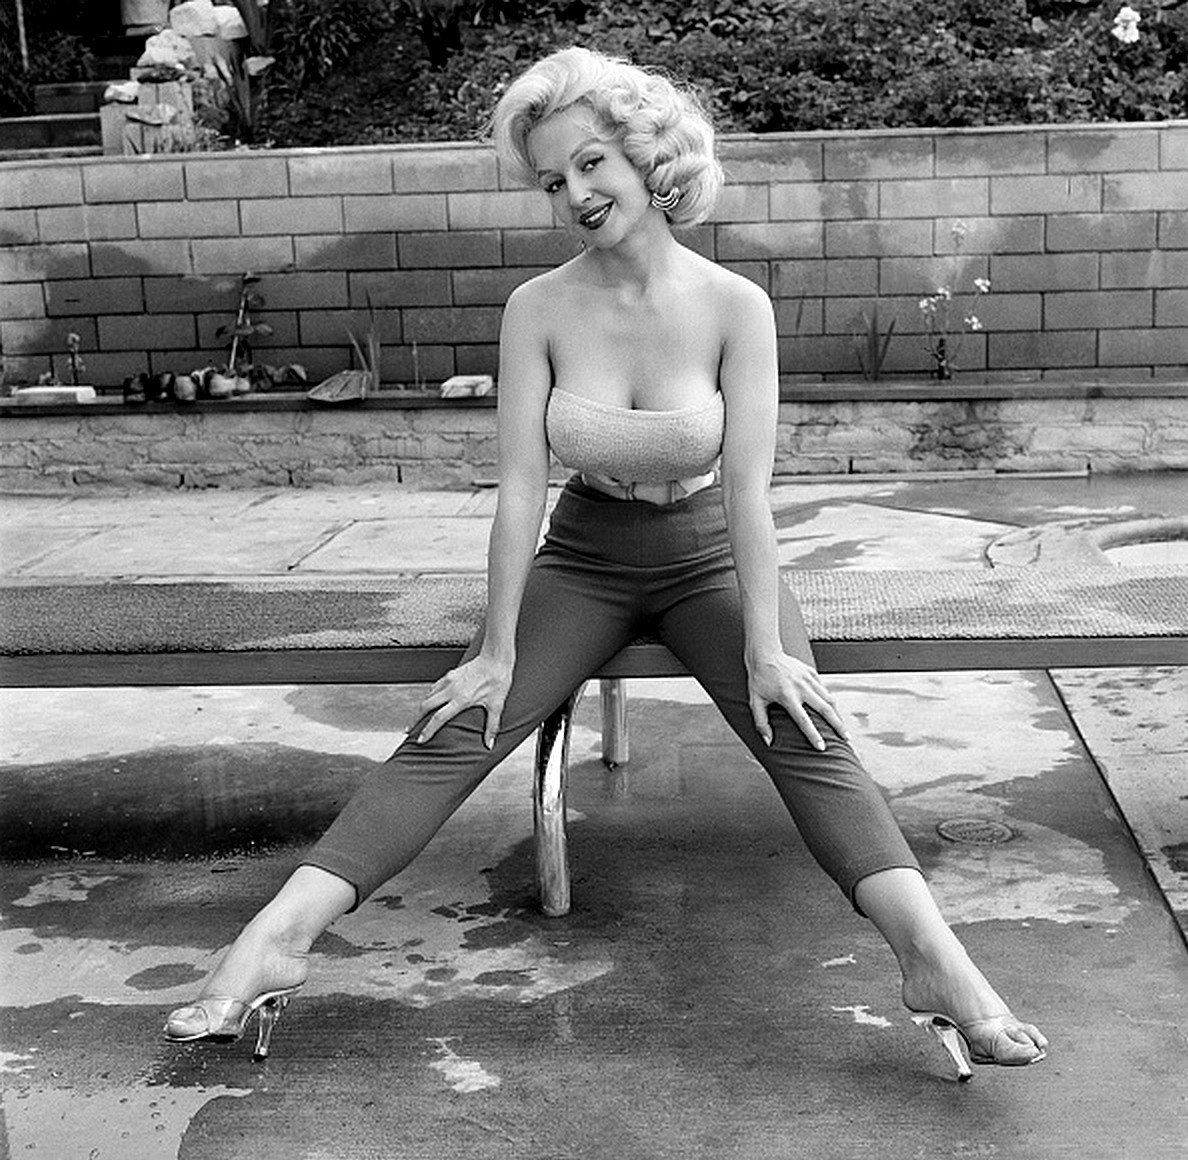 Greta Thyssen in the 1950s and 1960s (29).jpg